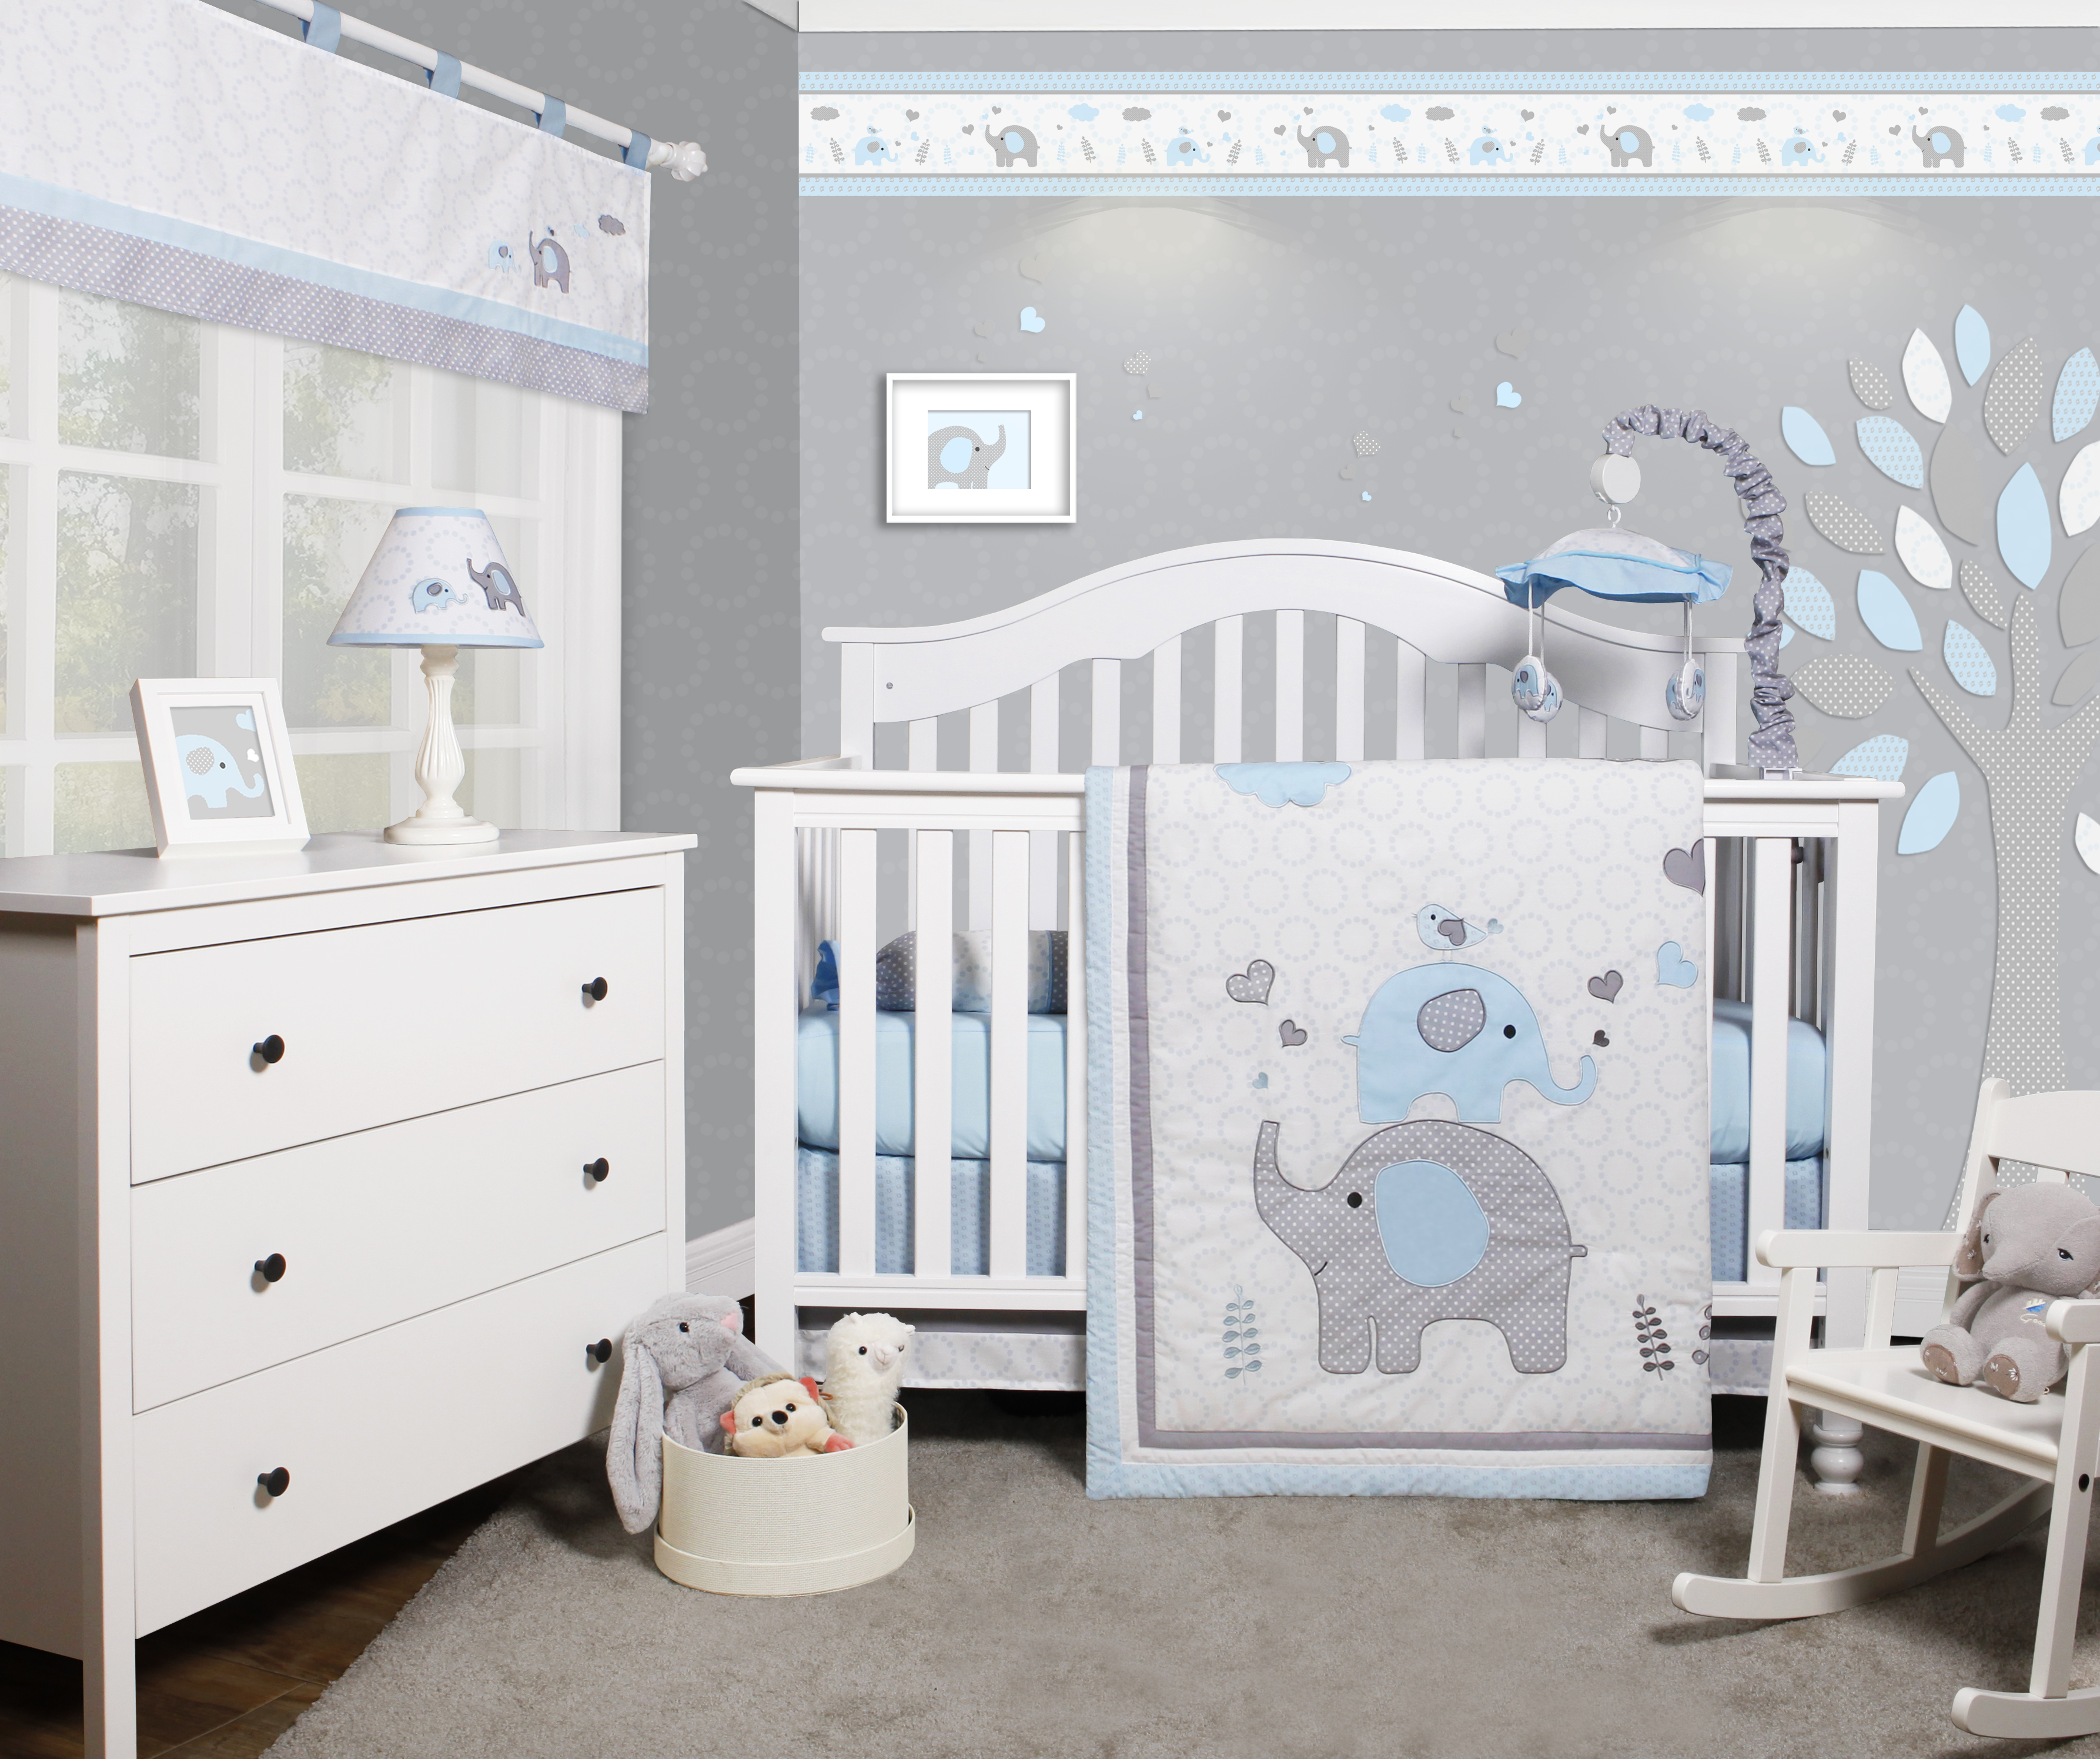 OptimaBaby Blue Grey Elephant 6 Piece Baby Nursery Crib Bedding Set